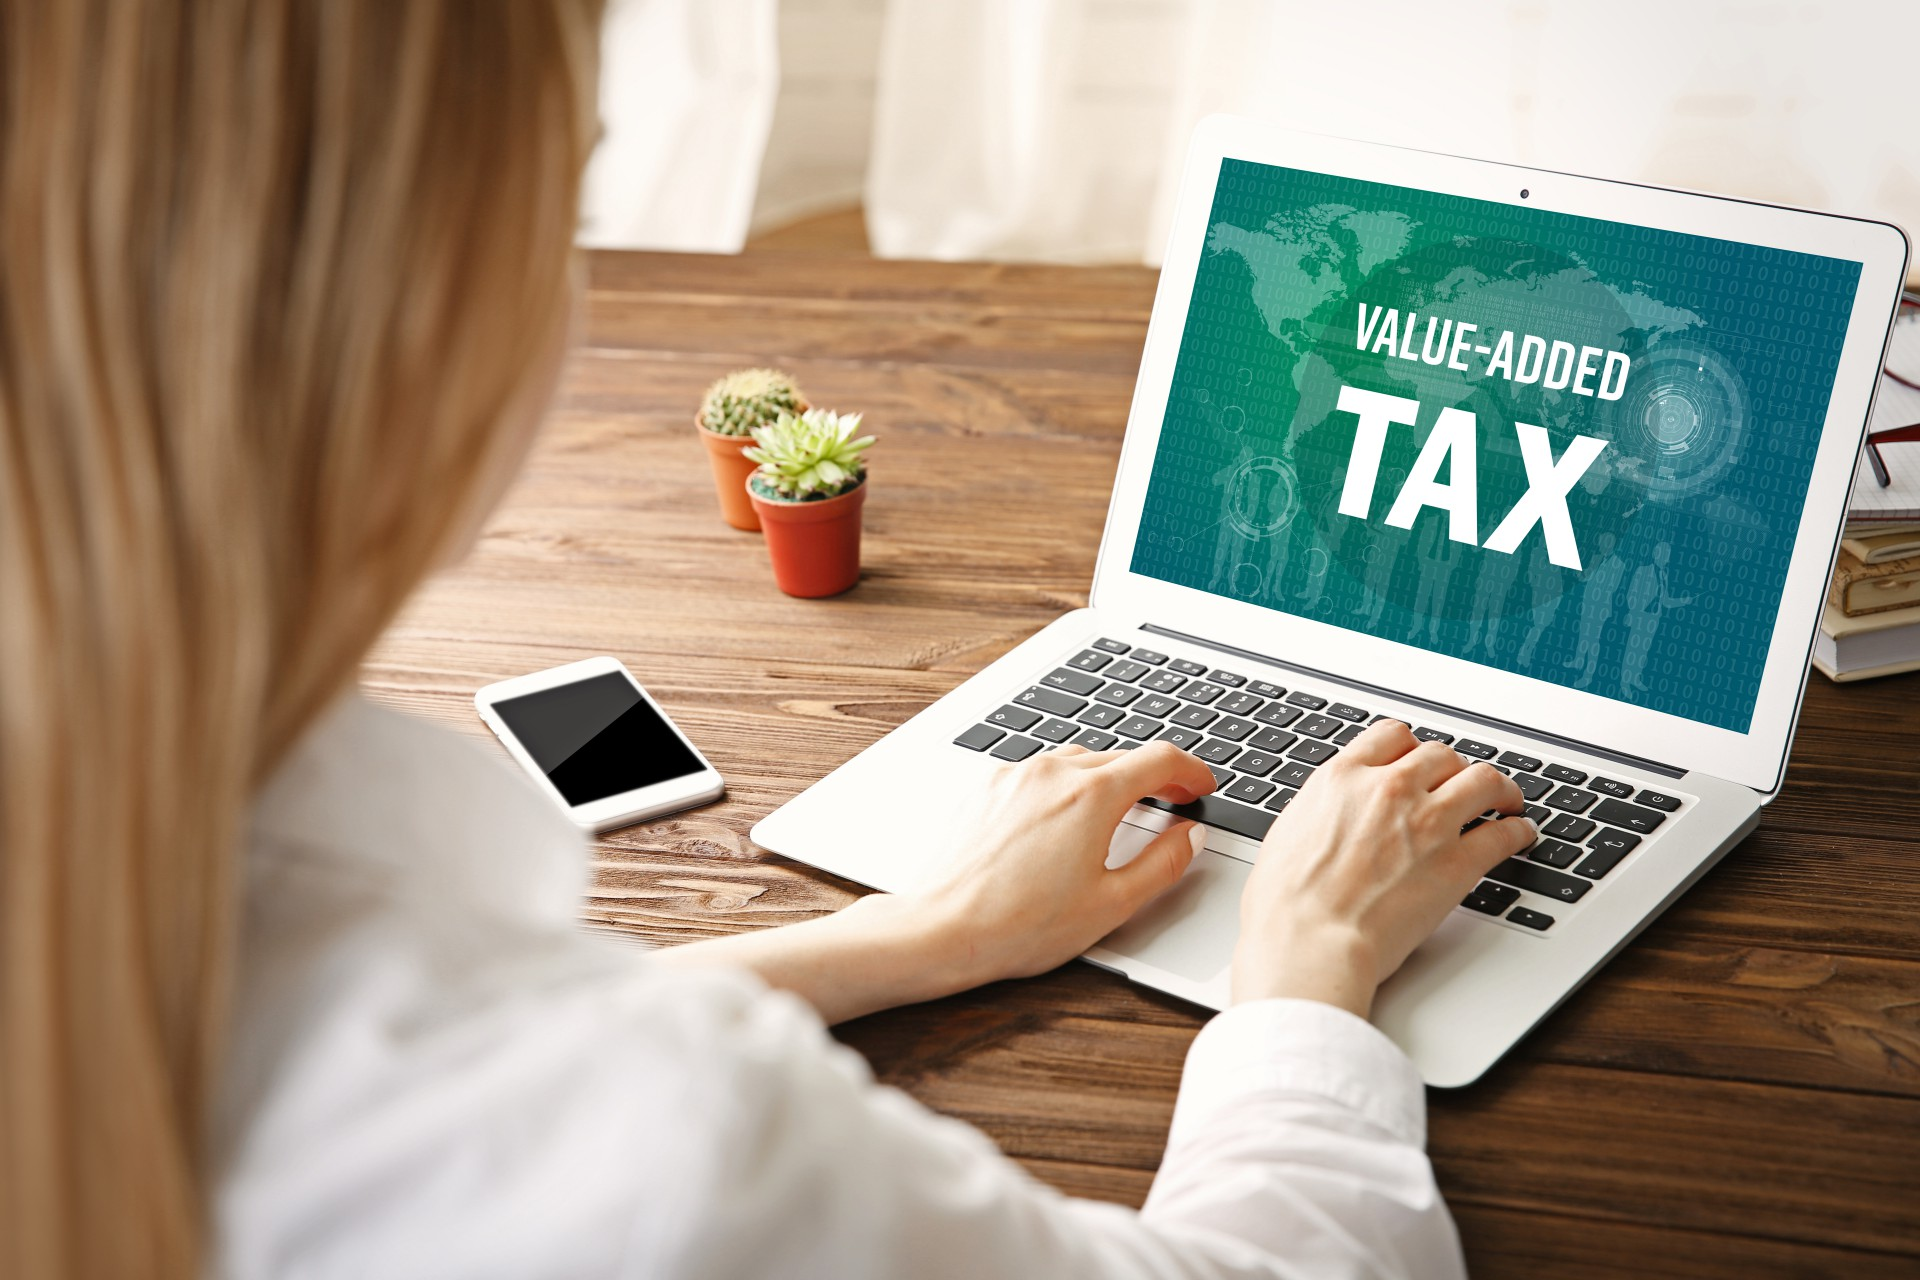 Value Added Tax (VAT) law